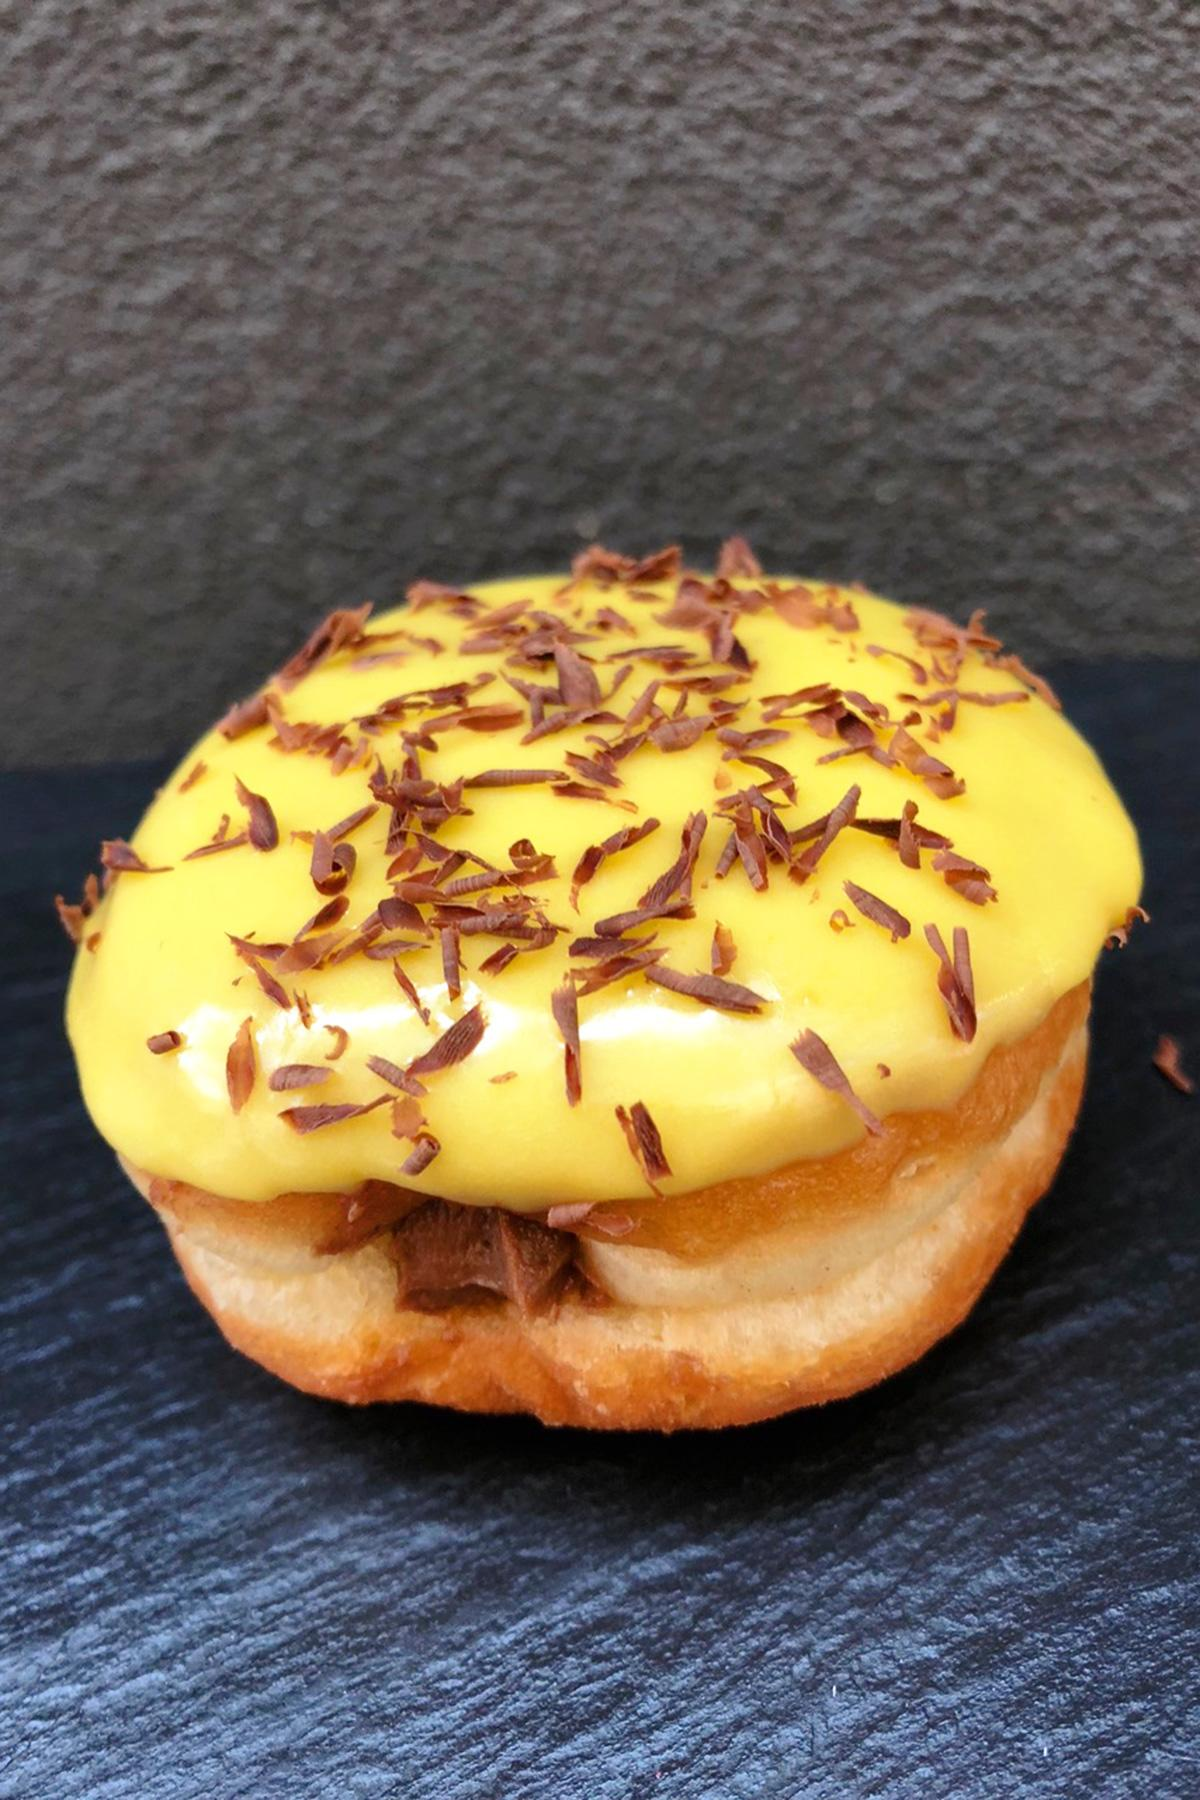 10 Unforgivable Donuts and Where to Find Them